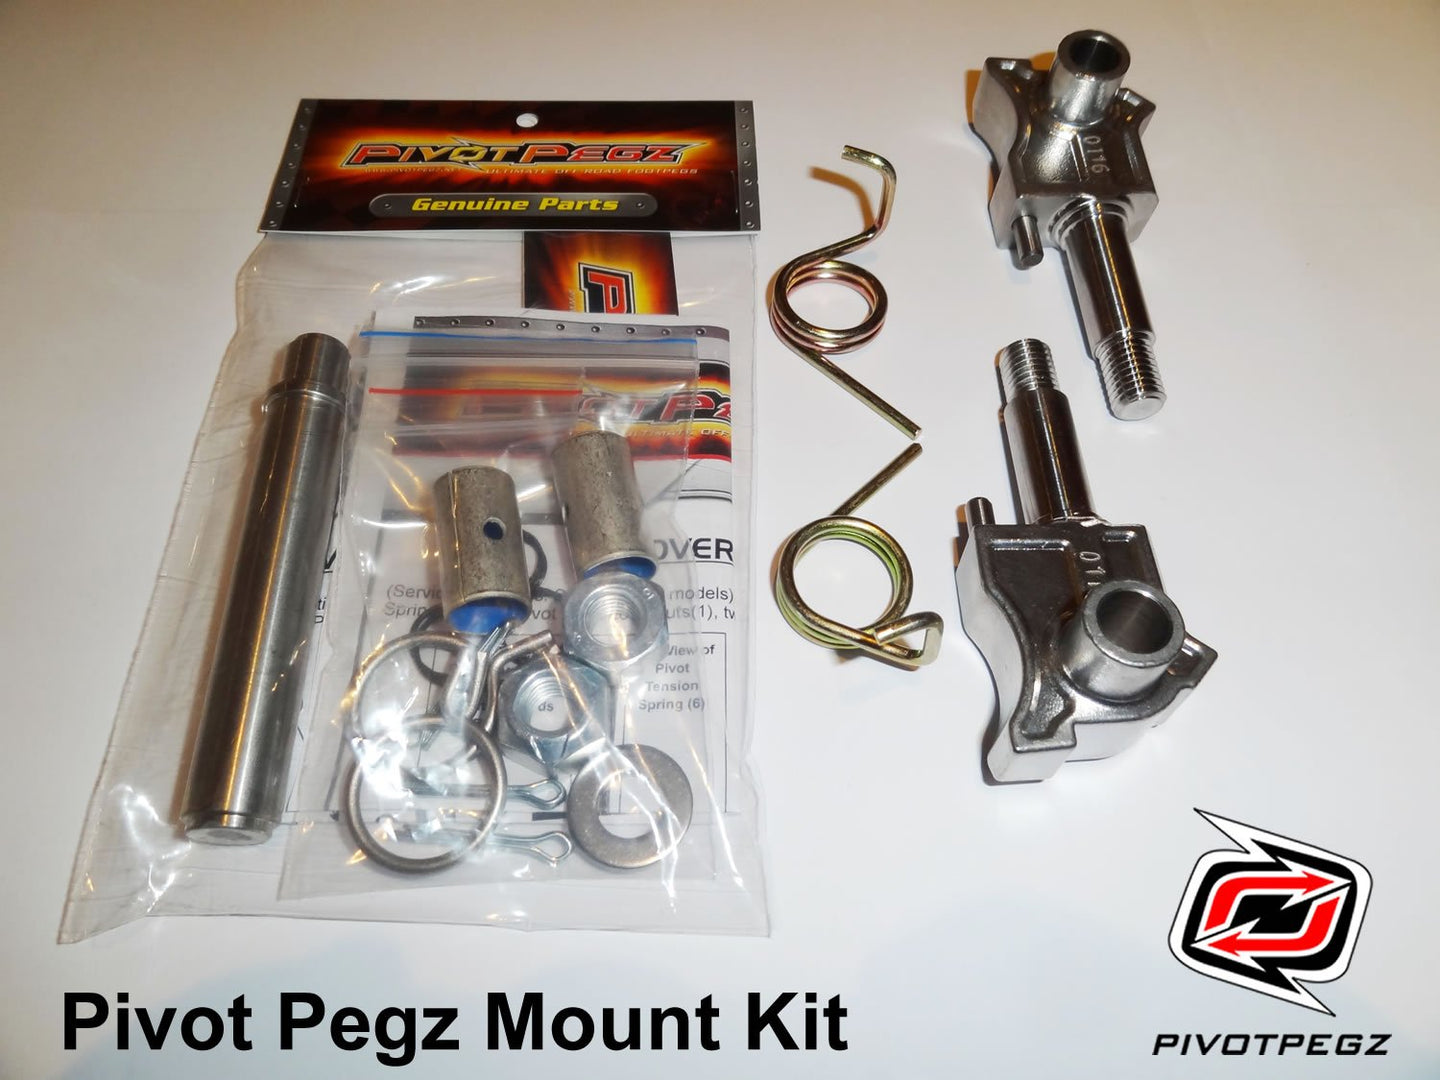 Pivot Pegz Mount Kit